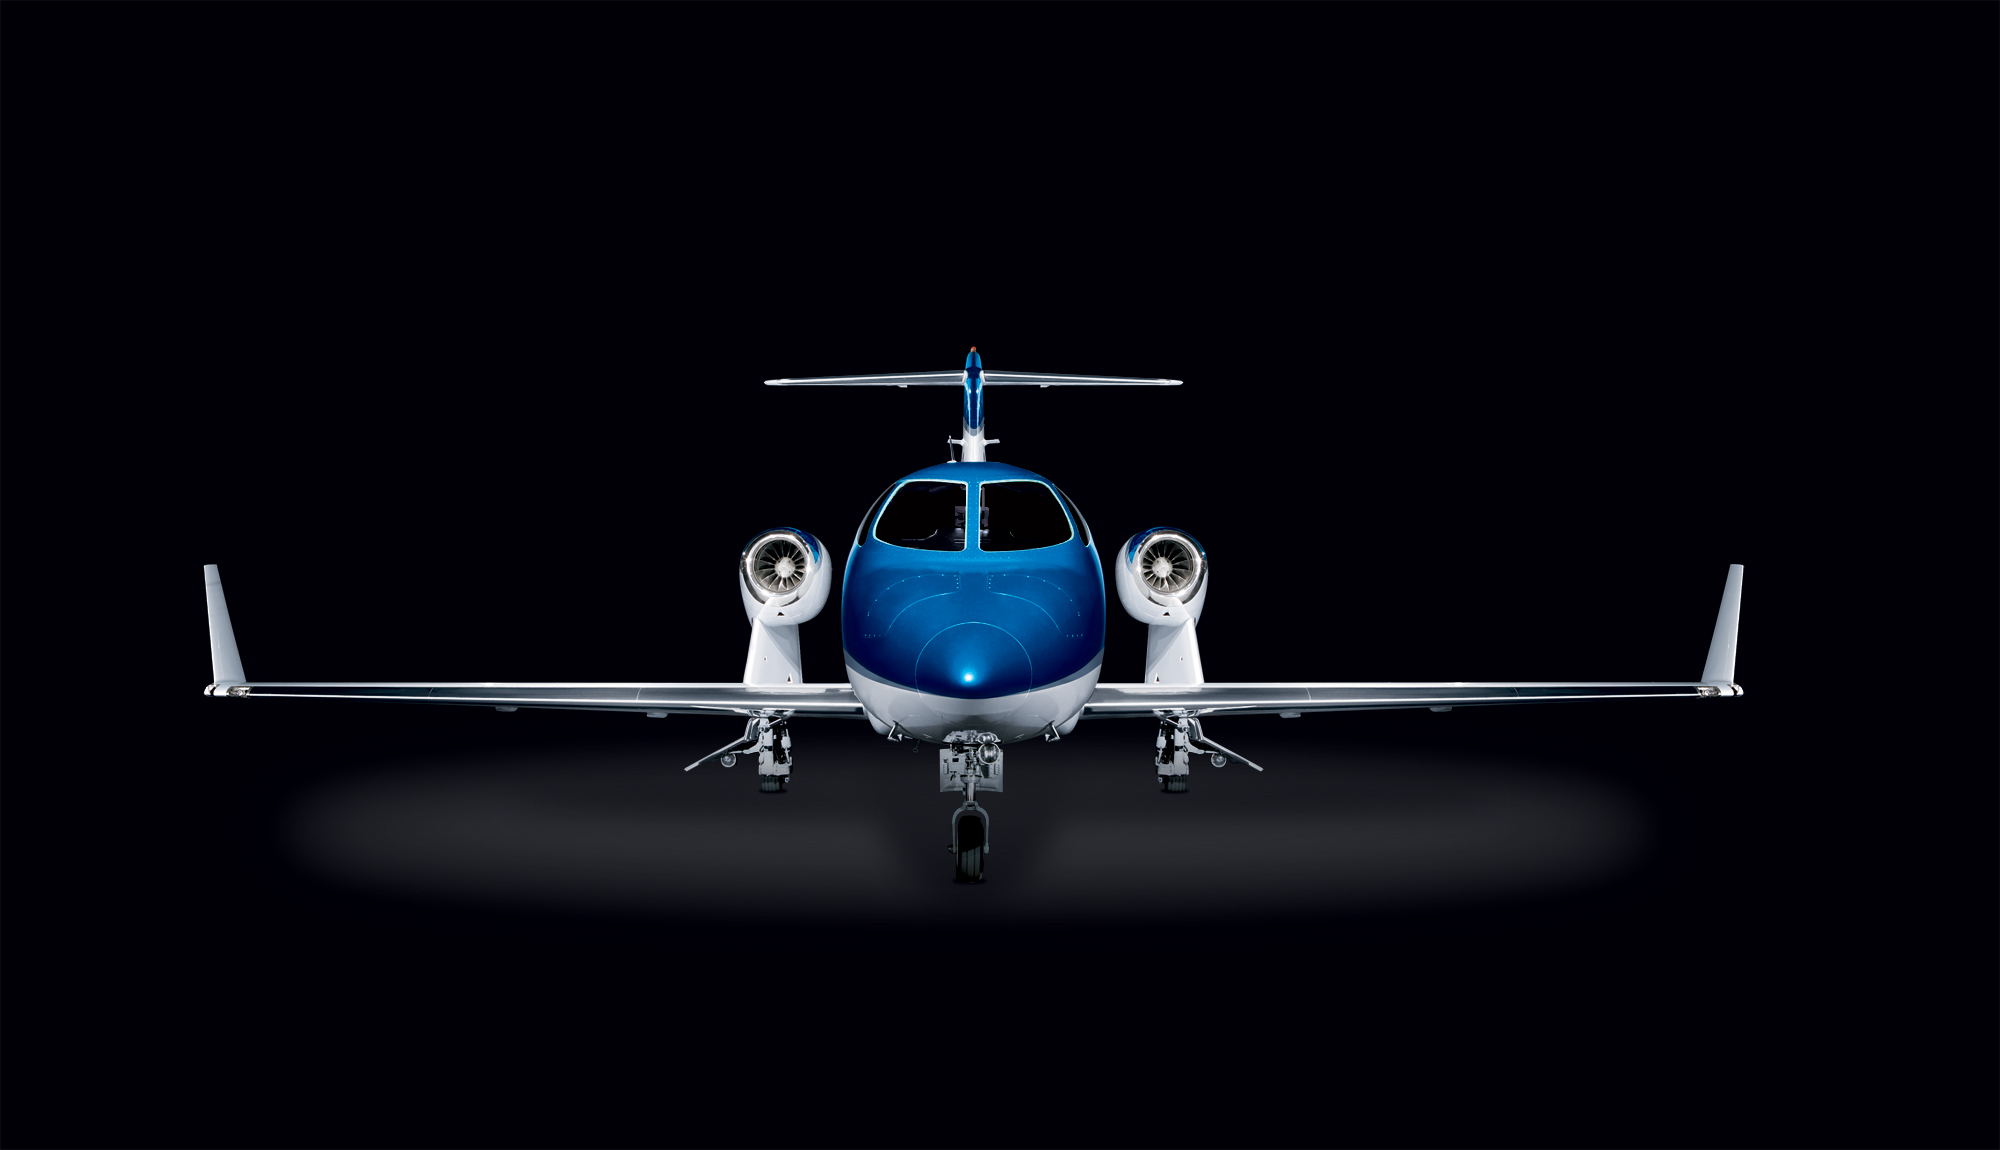 Pictures: Honda Jet to launch first plane